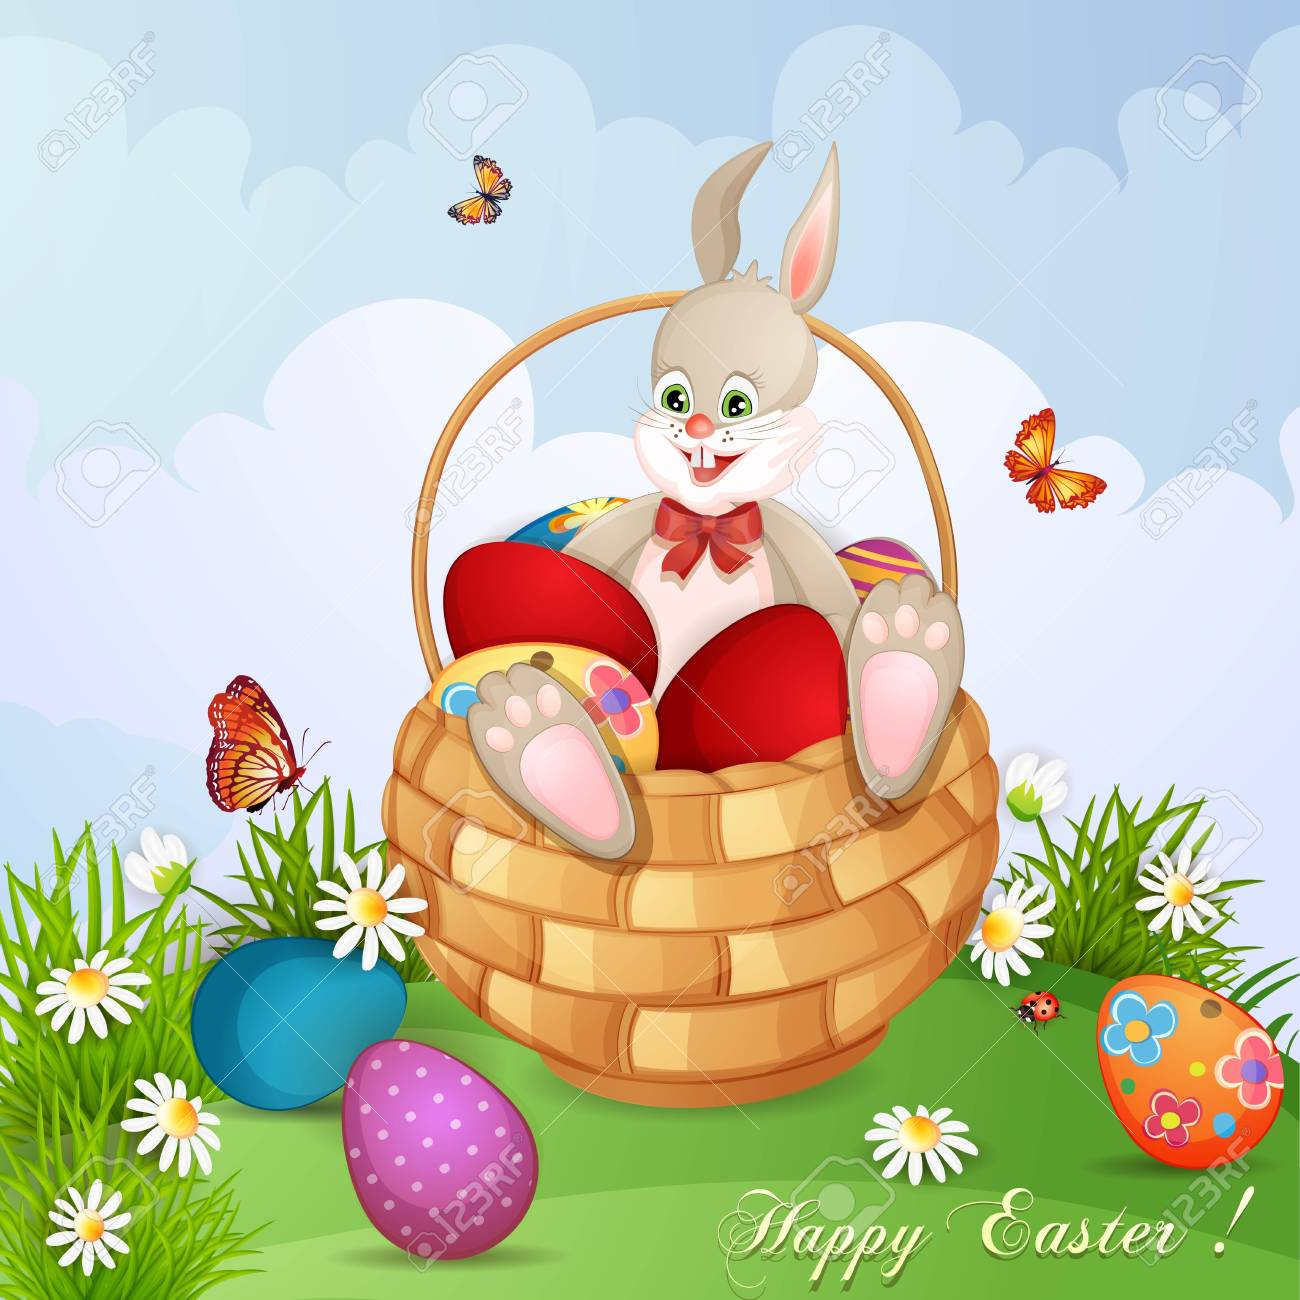 Easter greeting card with cute bunny in basket with Easter eggs Stock Vector - 18641157